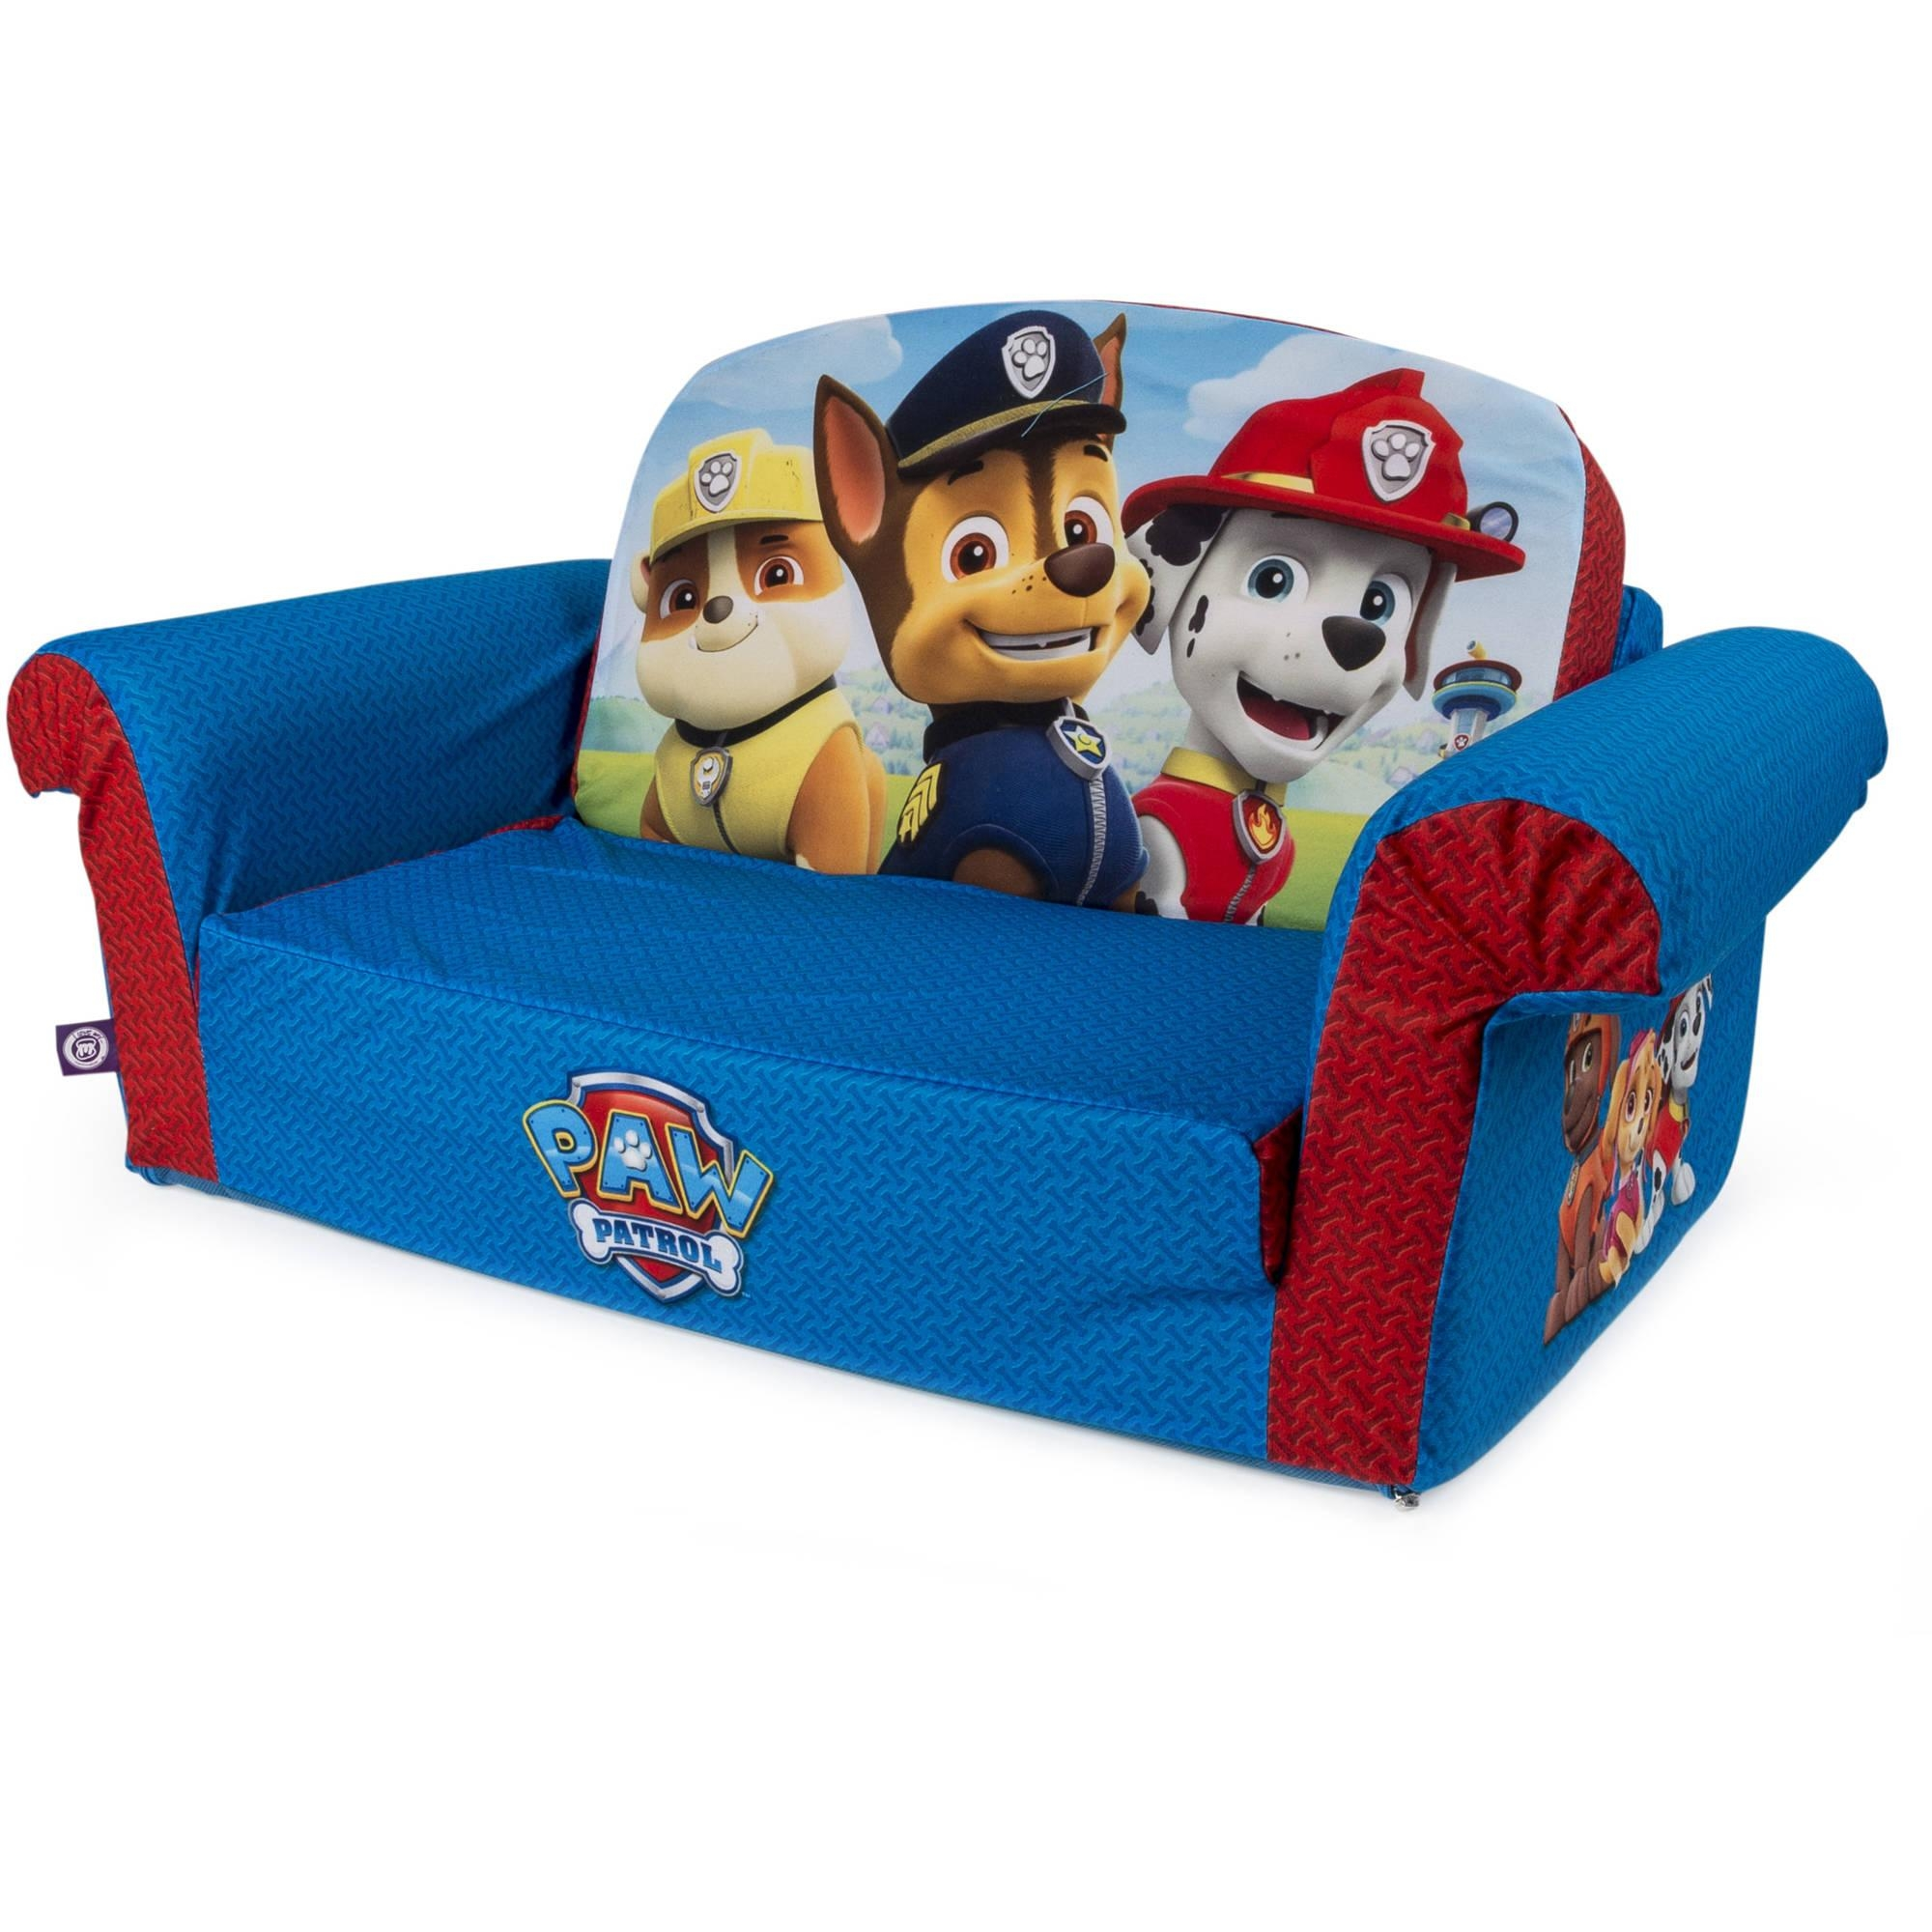 Marshmallow Furniture, Children's 2 In 1 Flip Open Foam Sofa Inside Childrens Sofa Bed Chairs (Image 13 of 20)